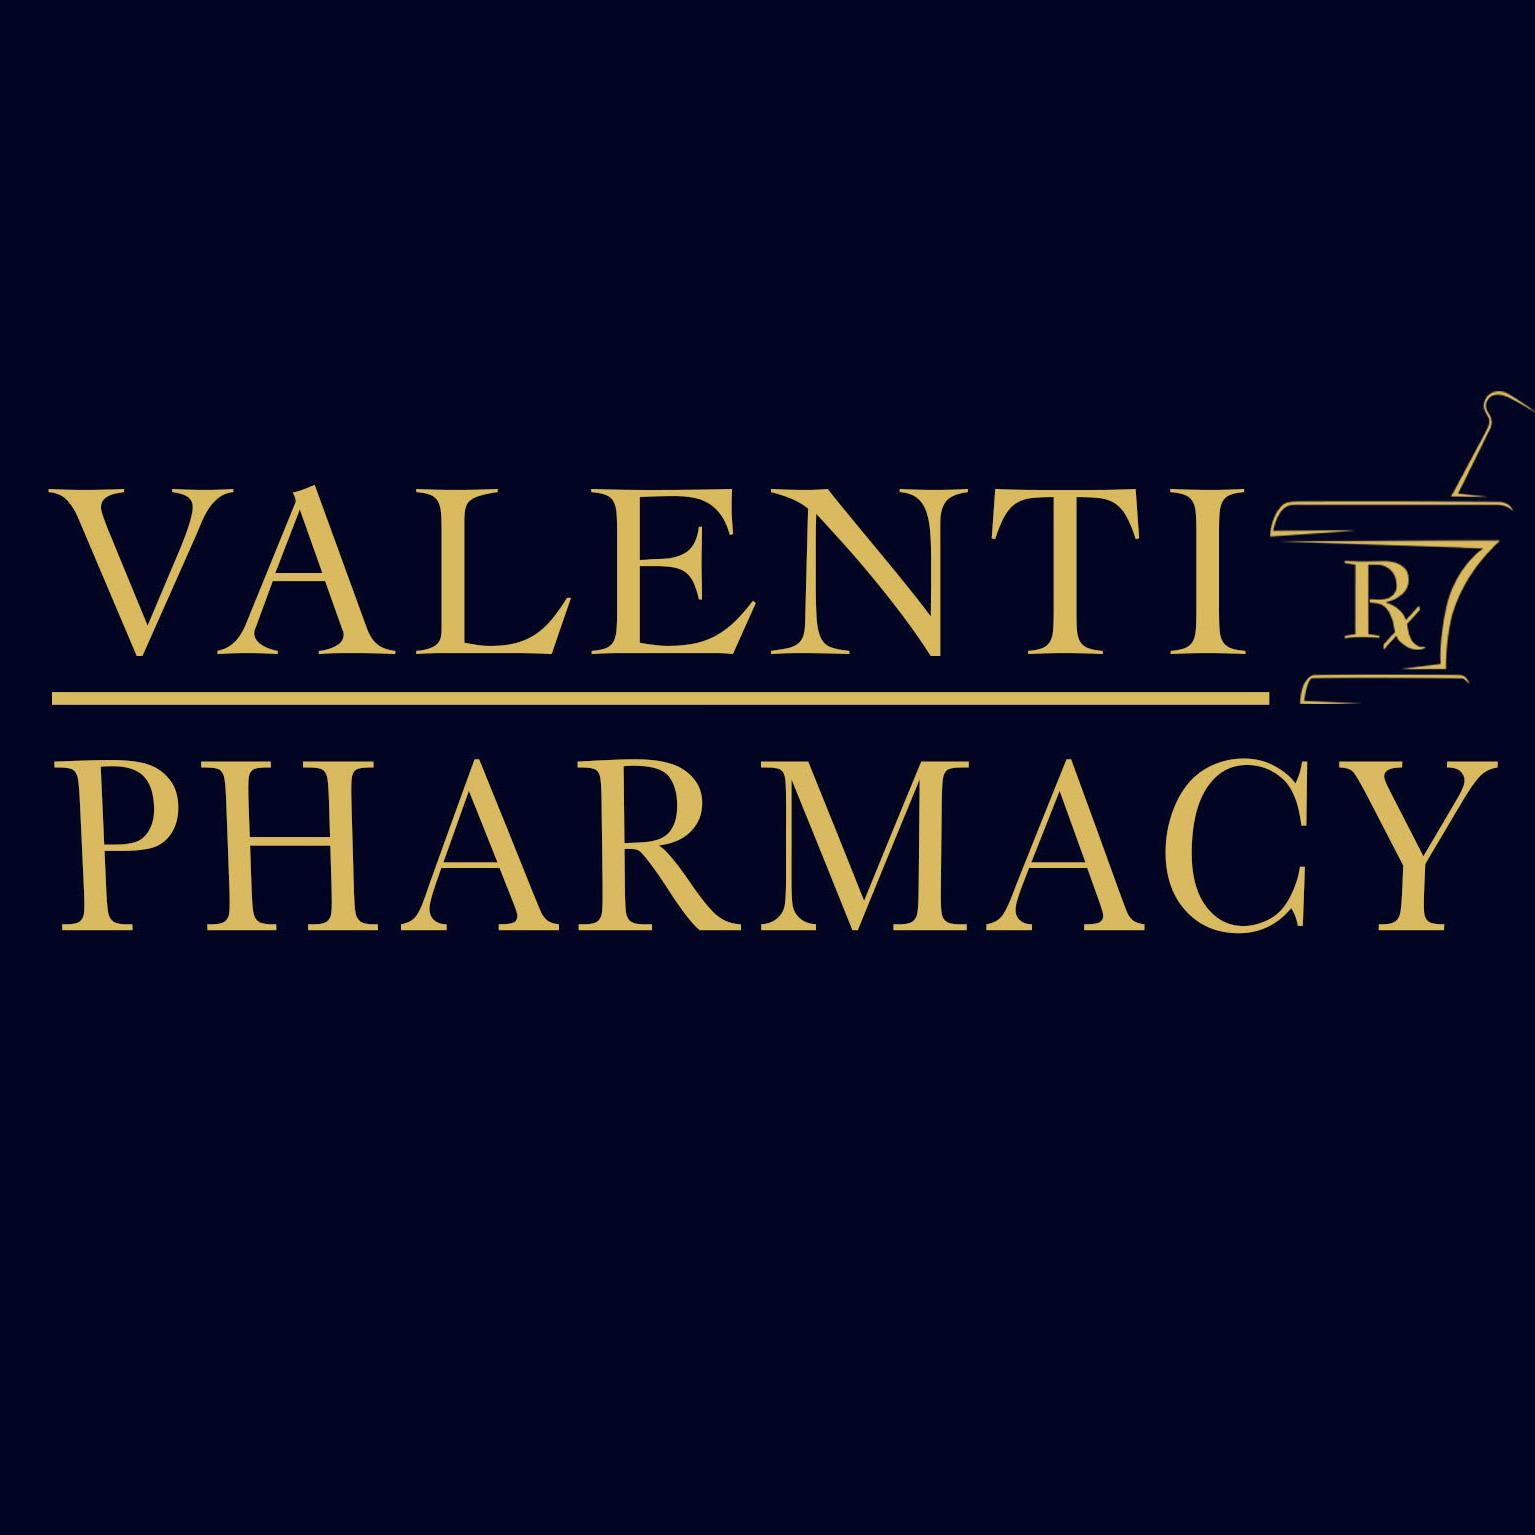 Valenti Pharmacy